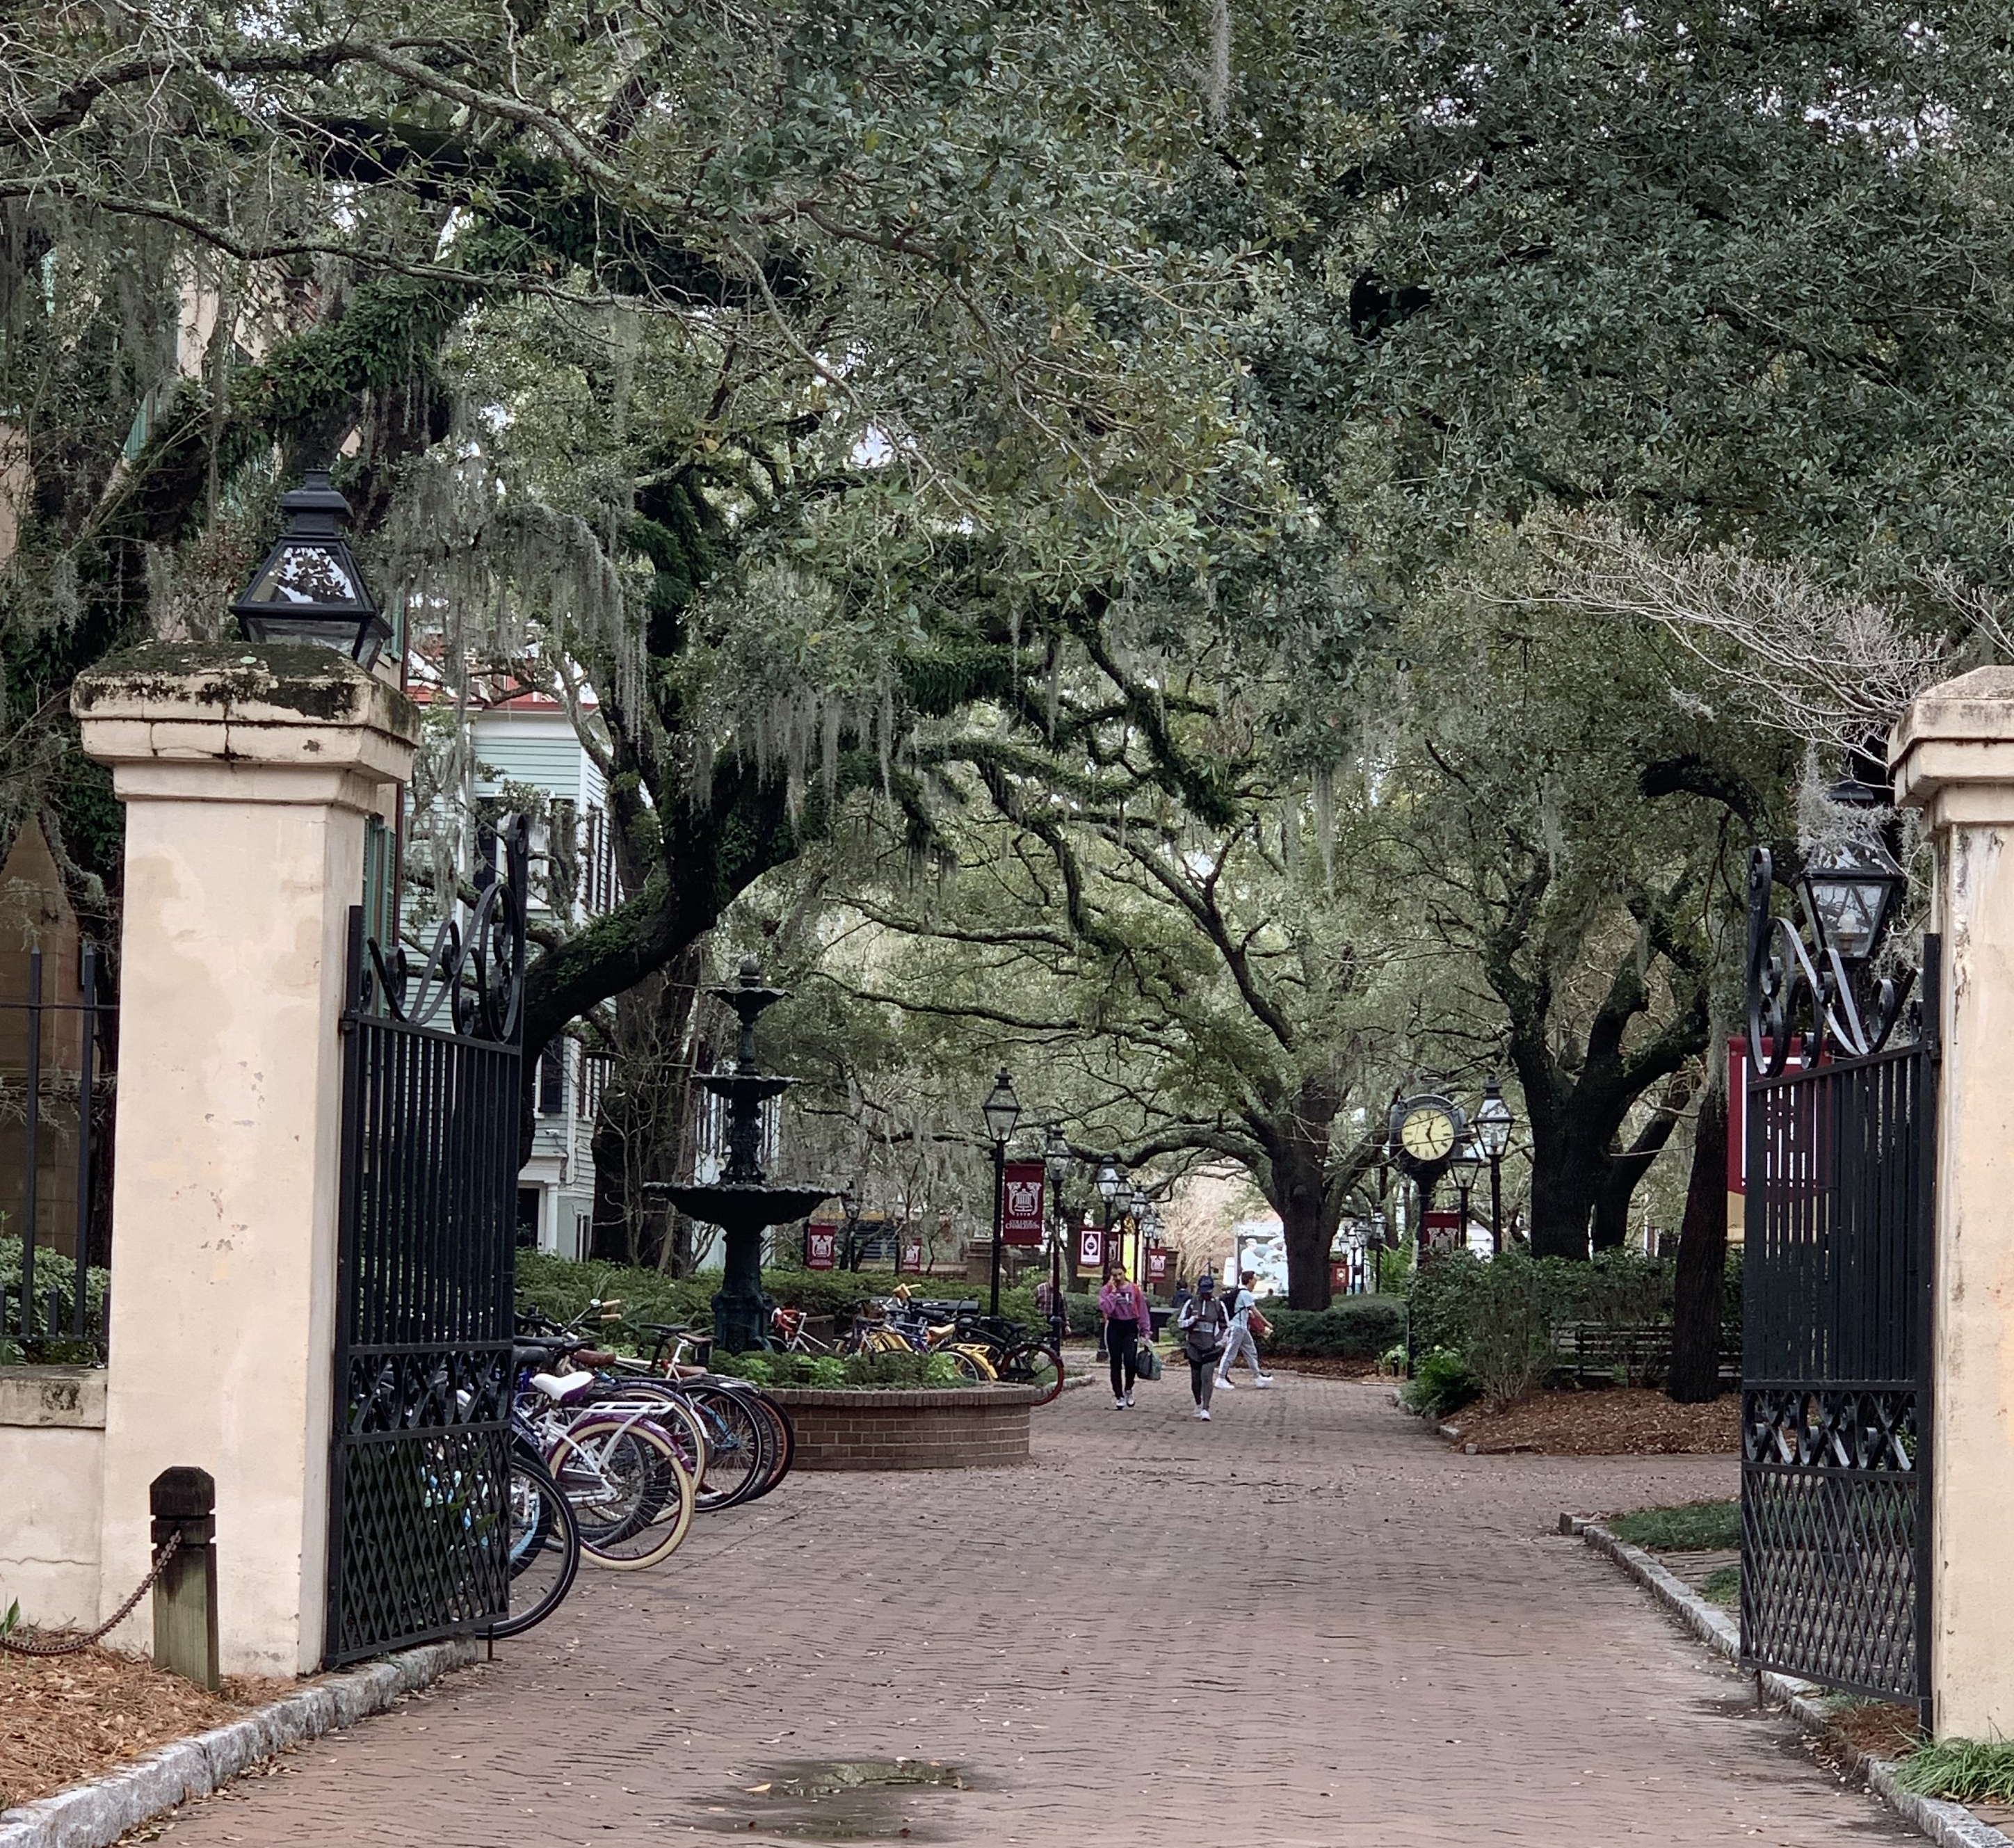 A Charleston street with tree branches and fountains